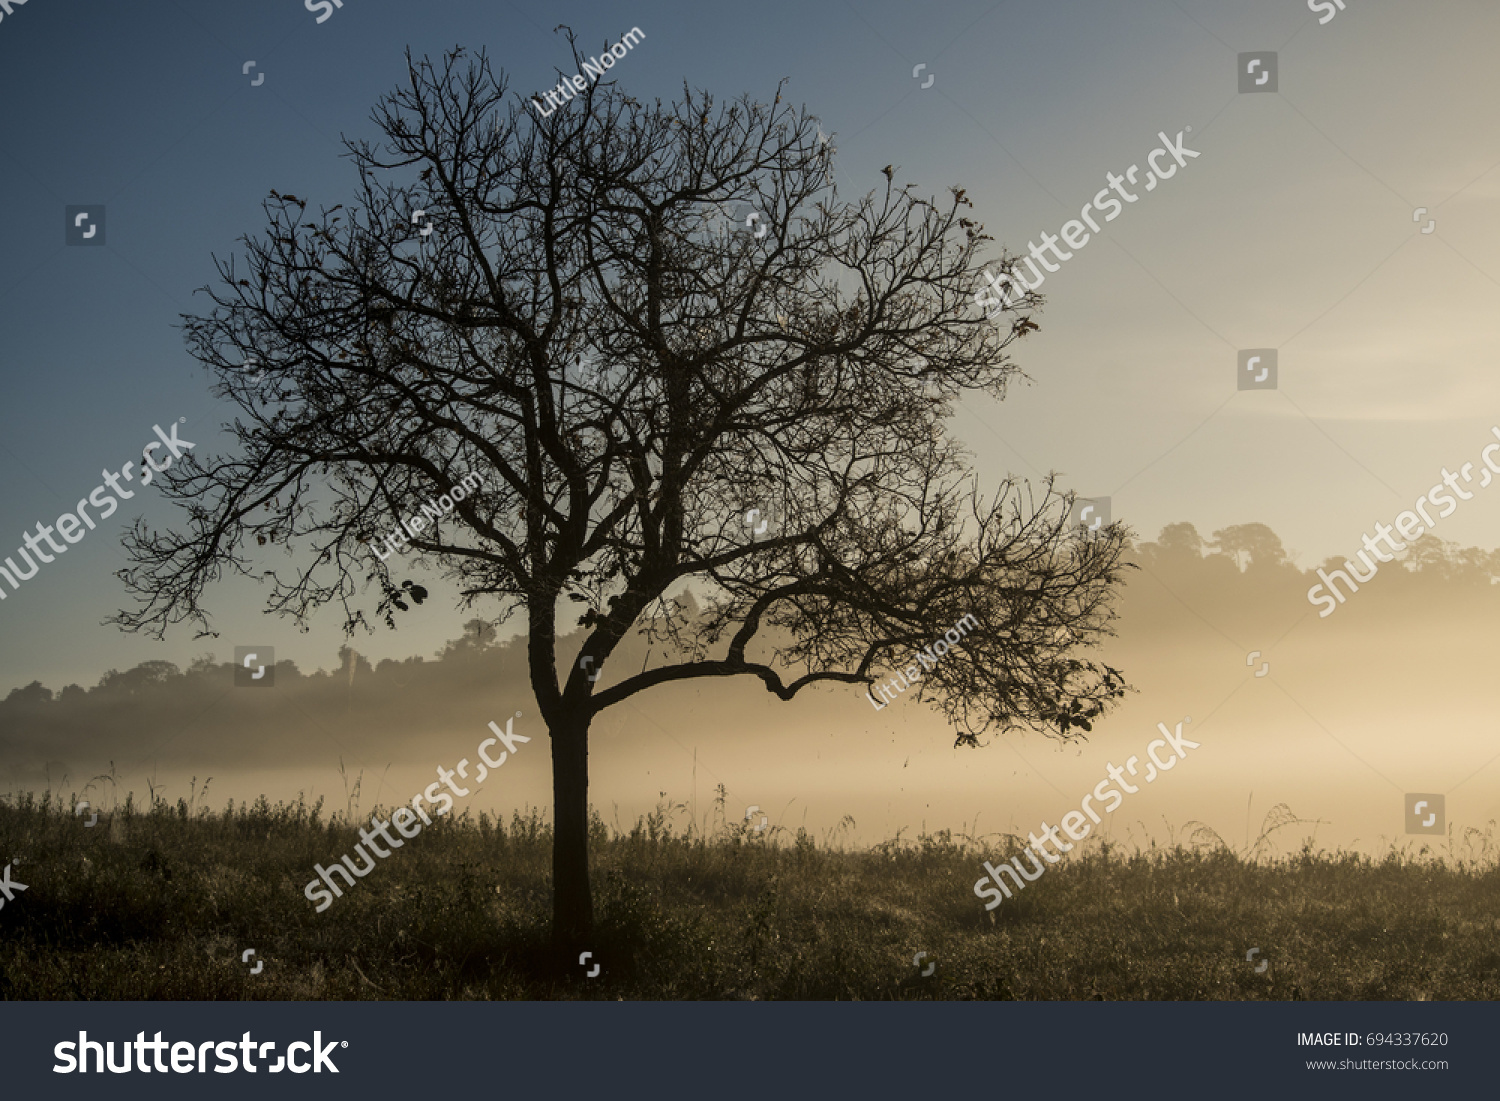 Silhouette Tree With morning light #694337620